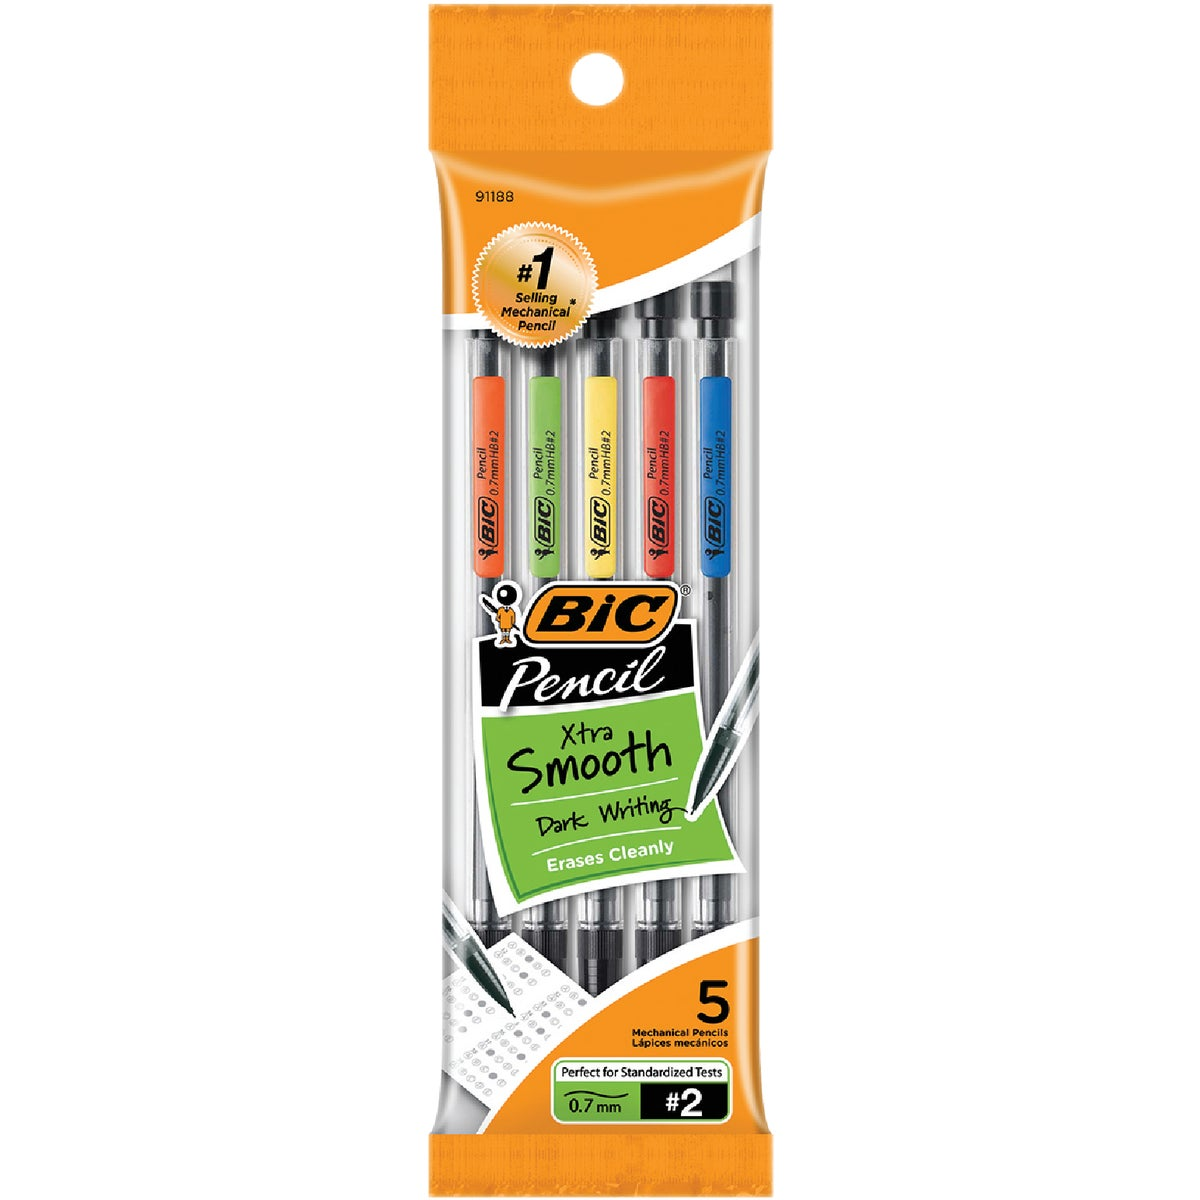 5PK .7MM PENCIL - MPP51BLK by Bic Corporation